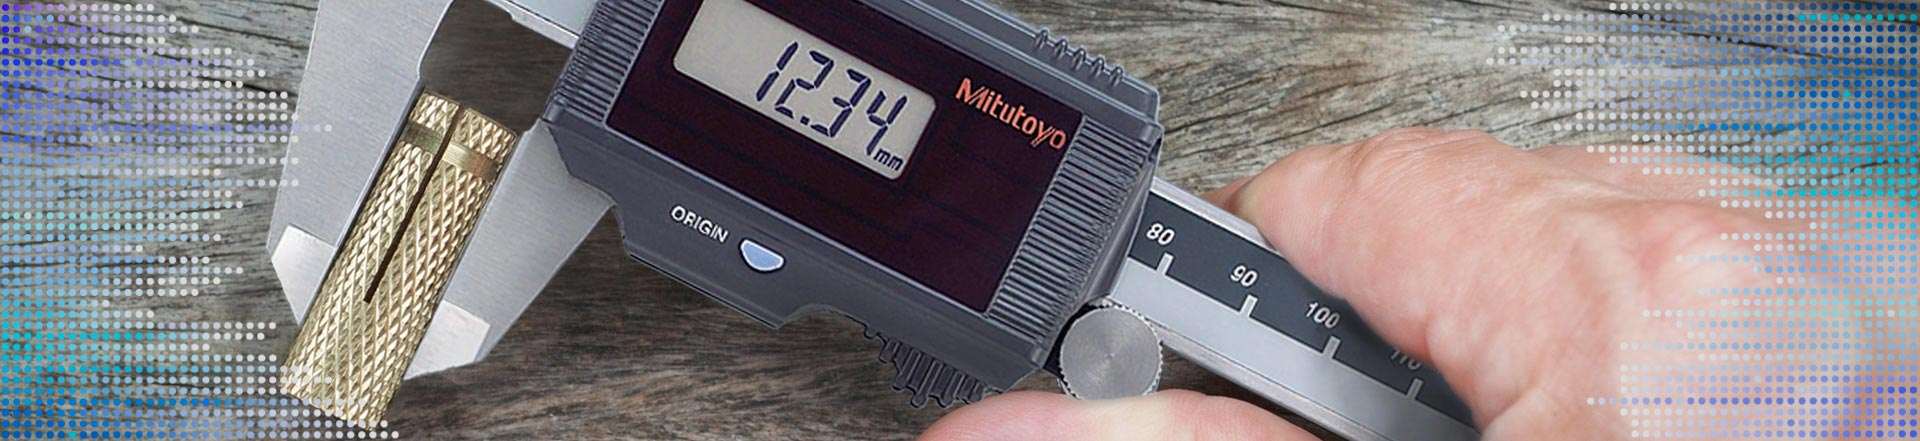 Mitutoyo measuring equipment